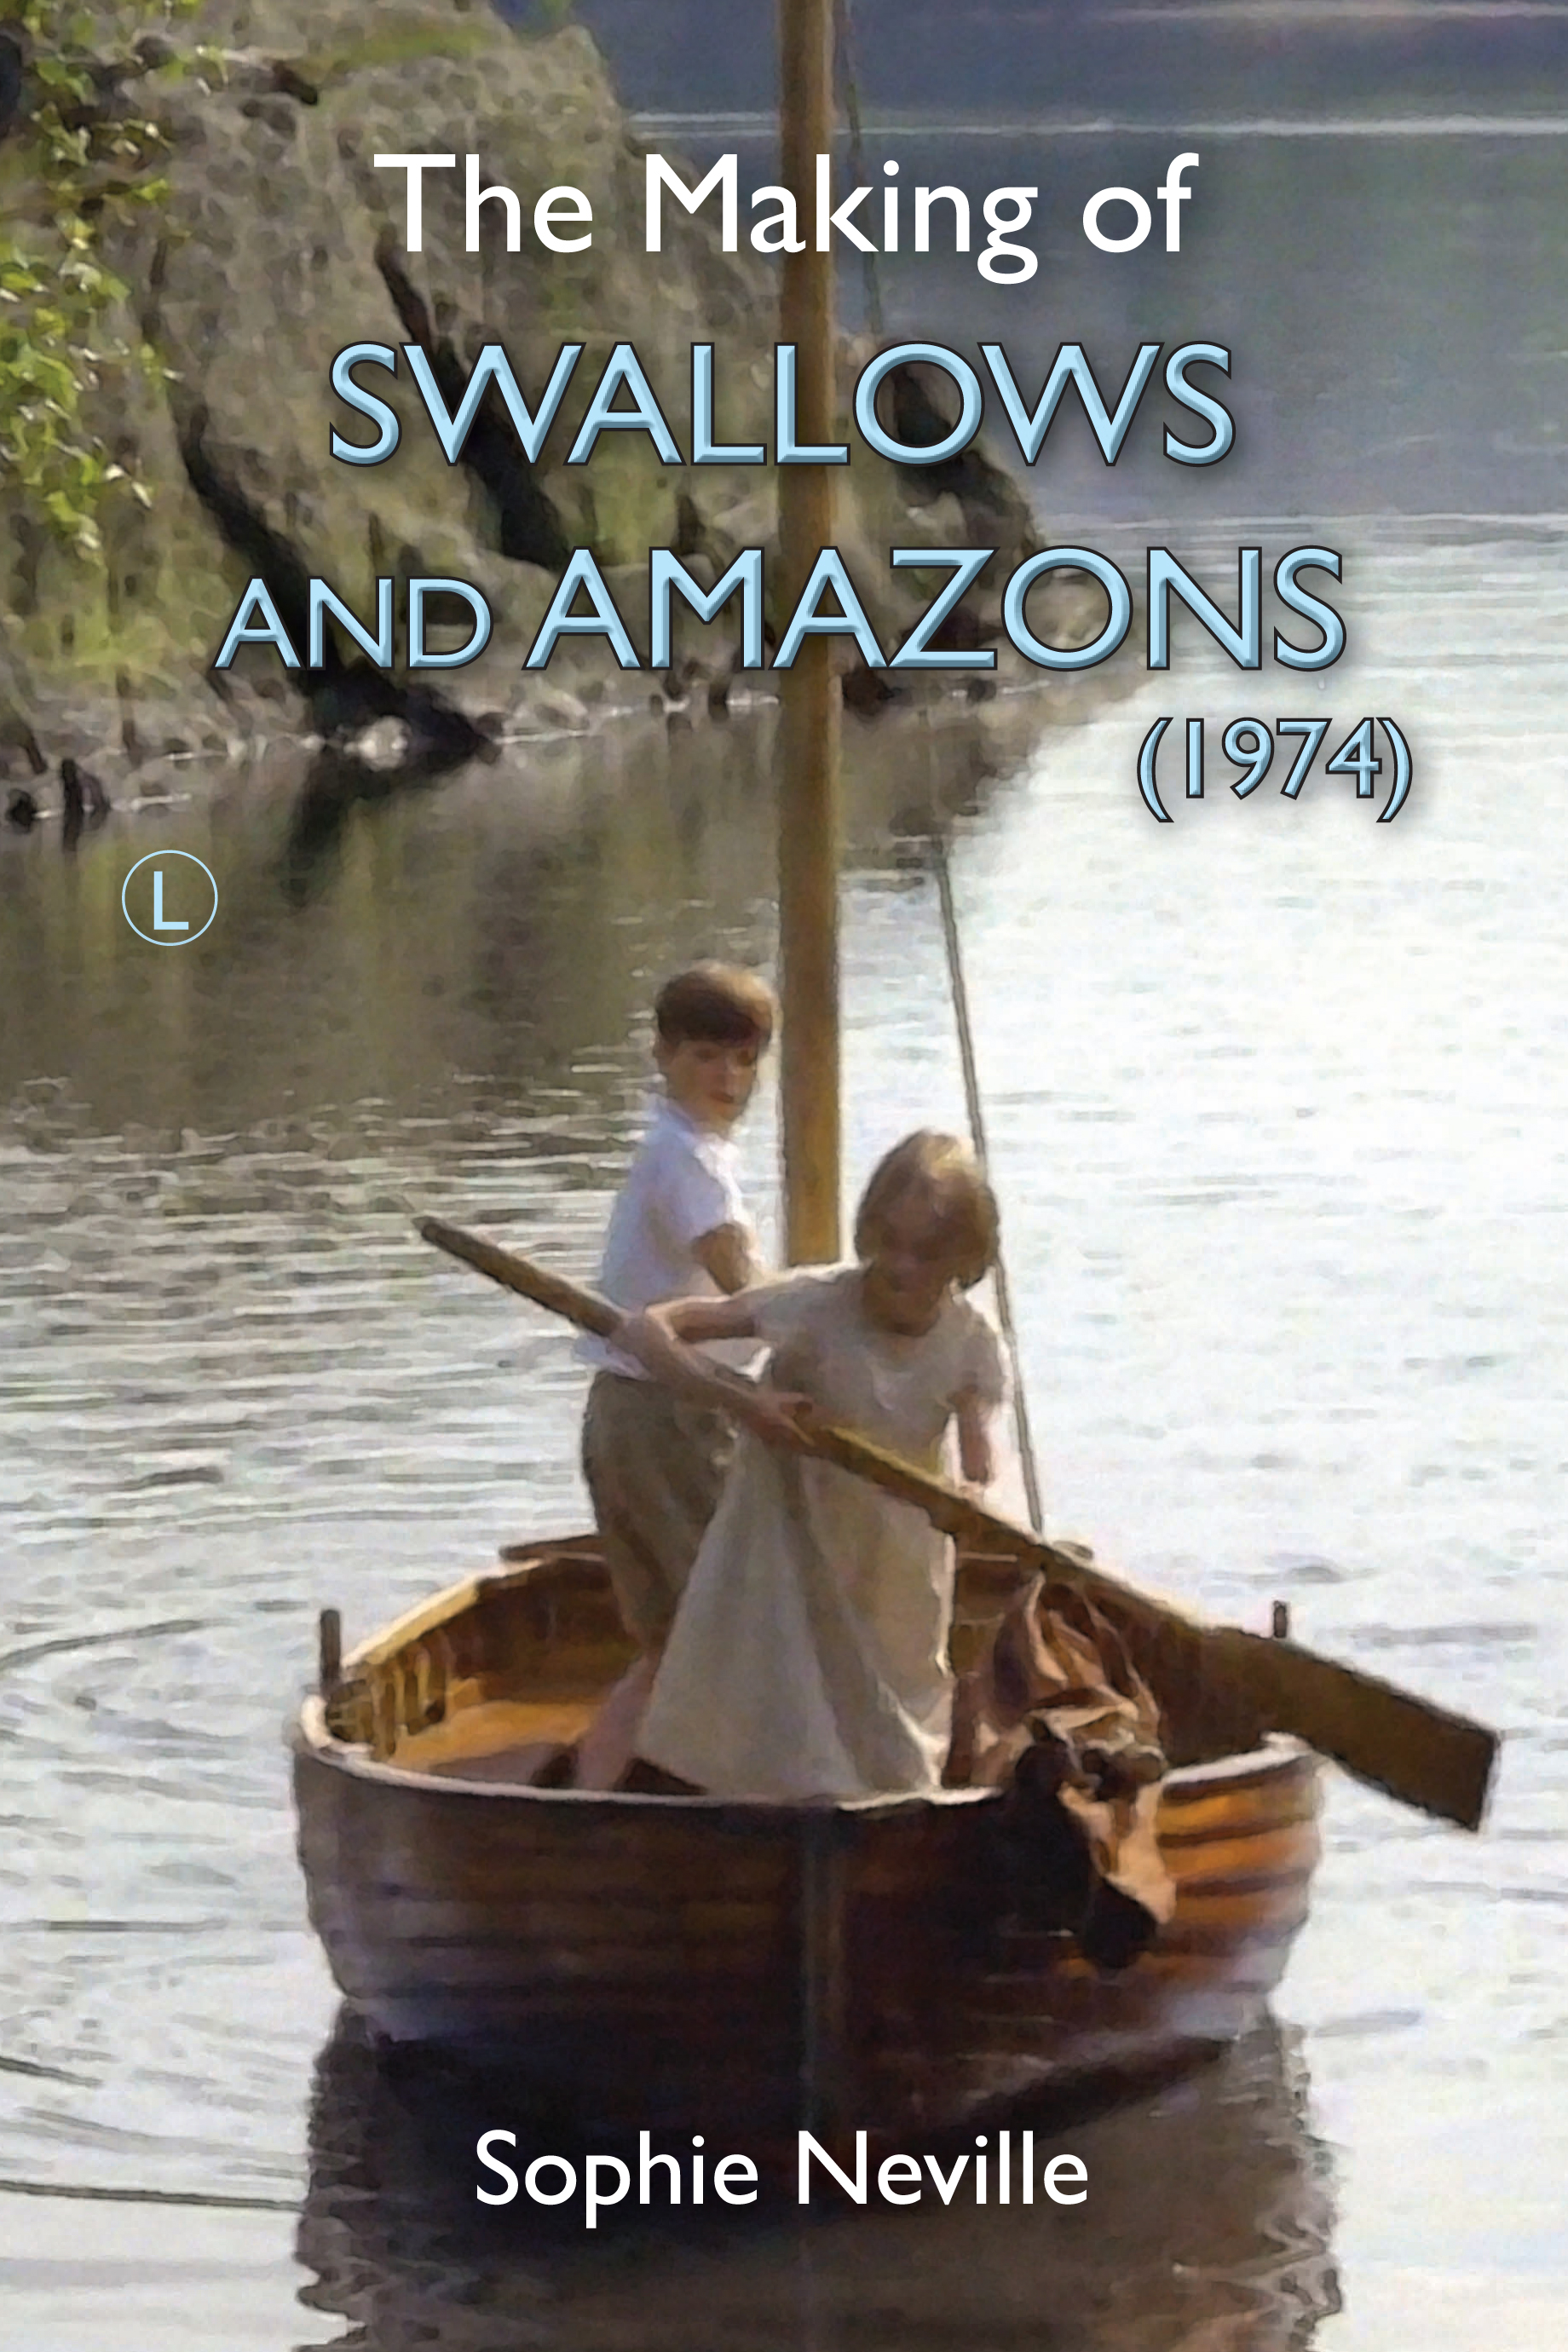 The Making of Swallows and Amazons 1974